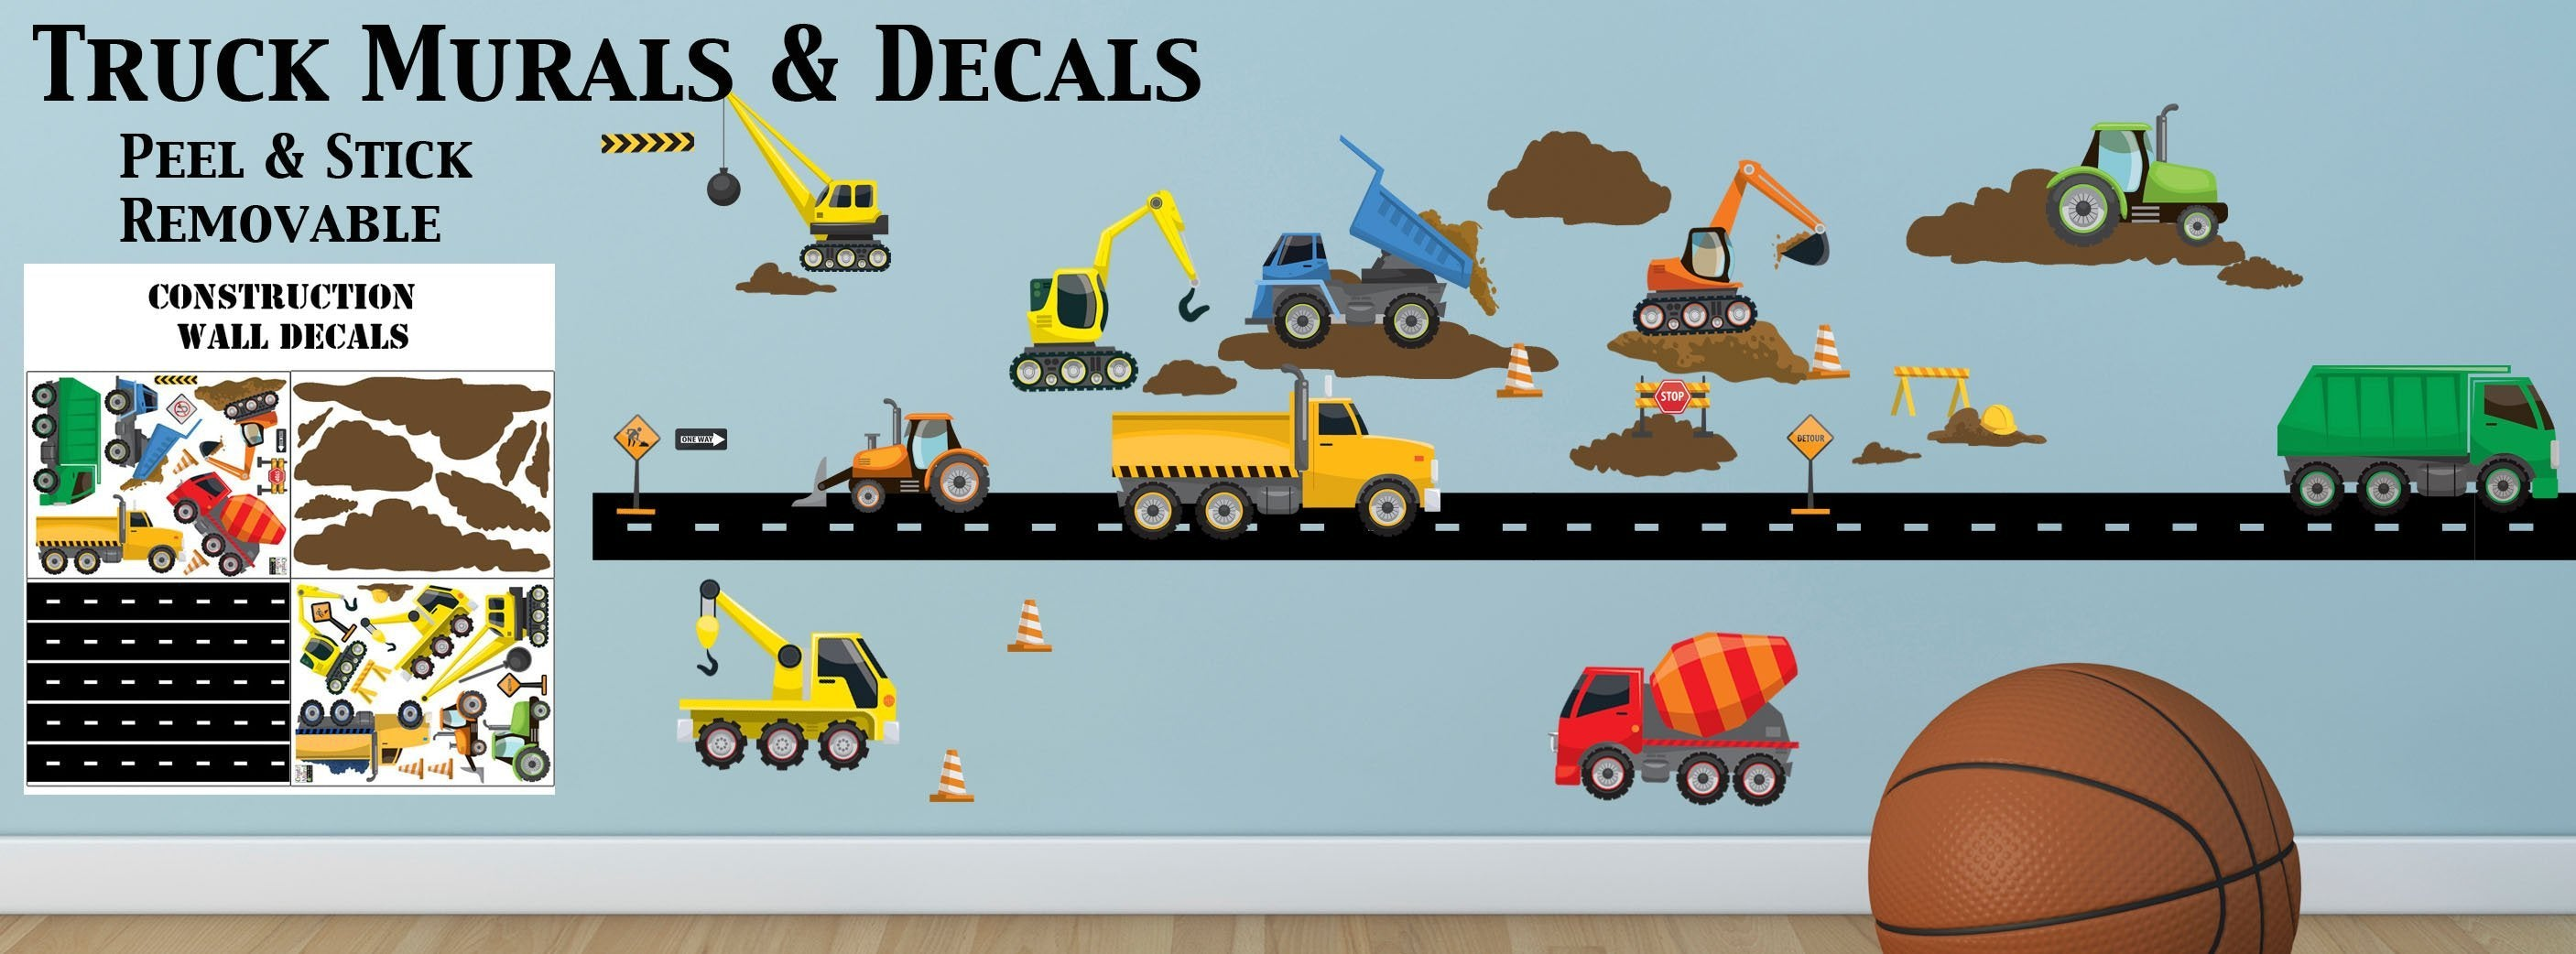 Trucks Wall Decals & Construction Murals